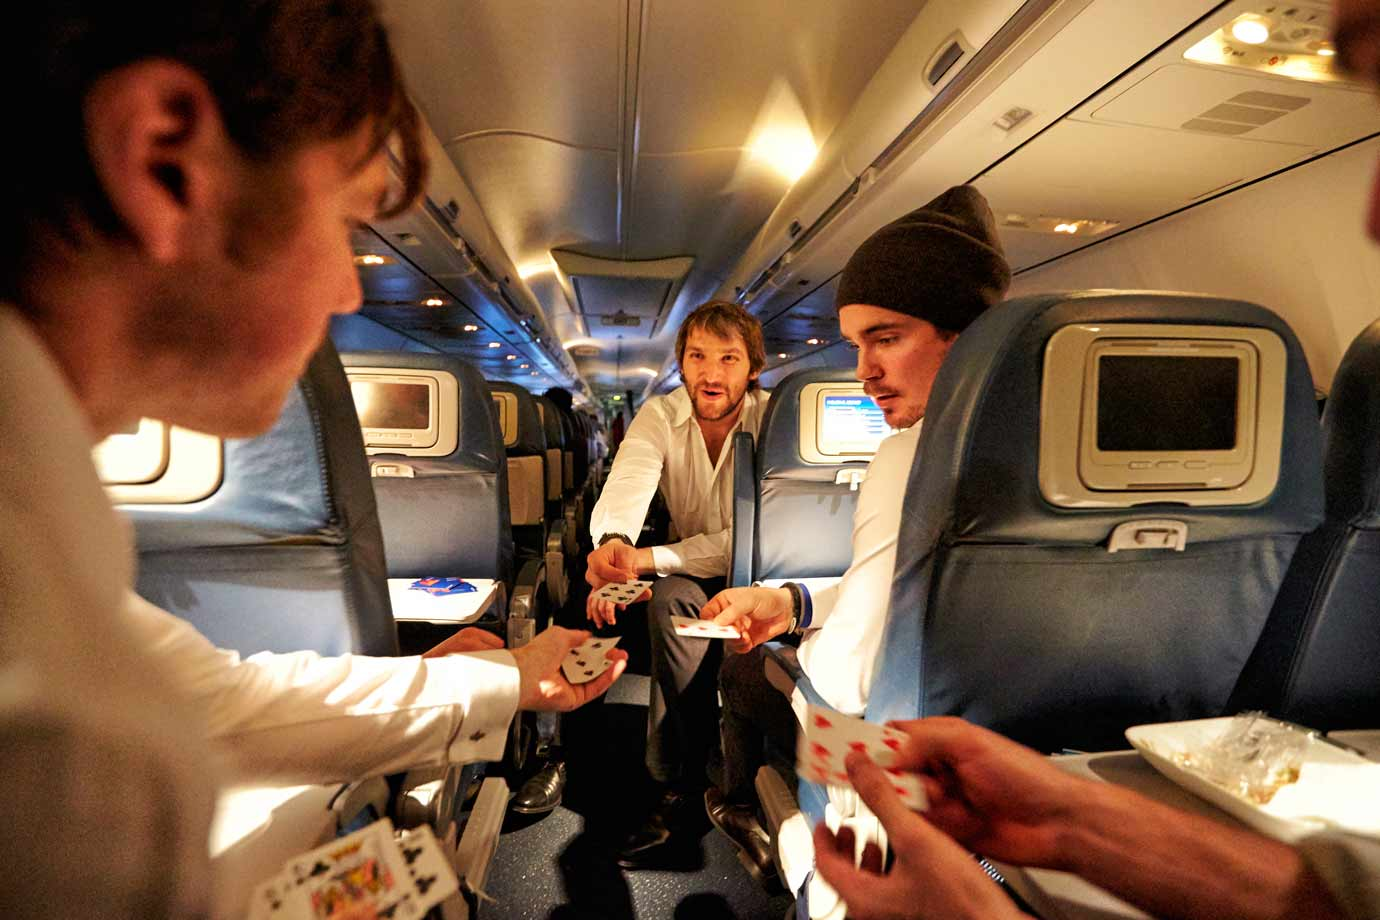 On their way to Toronto aboard a 737, Alex Ovechkin and teammates eat and relax with a game of 7 Up, 7 Down.